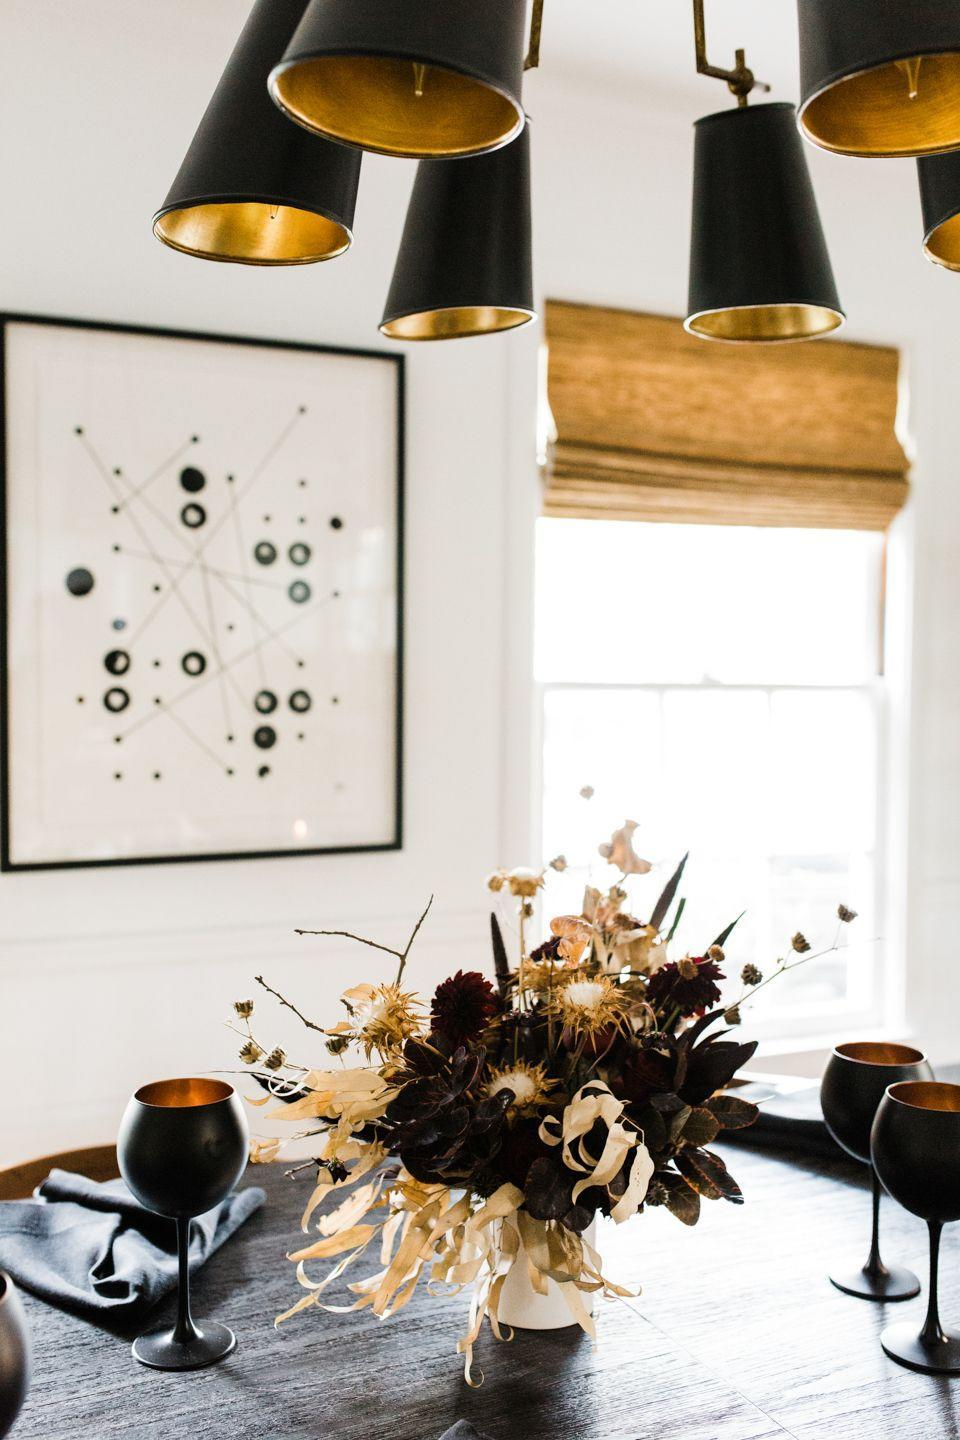 "<p>Paired with inky black stemware and napkins, this moody floral arrangement by <a href=""https://cheetahisthenewblack.com/living/lifestyle/grown-up-halloween-entertaining/"" rel=""nofollow noopener"" target=""_blank"" data-ylk=""slk:Cheetah Is the New Black"" class=""link rapid-noclick-resp"">Cheetah Is the New Black </a>sets the scene for an elegant, grown-up Halloween dinner party. </p><p><a class=""link rapid-noclick-resp"" href=""https://www.amazon.com/Black-Patterned-Wine-Glasses-FE13697905/dp/B00XGDSBHC/ref=sr_1_1?dchild=1&keywords=black+goblets&qid=1602268314&s=home-garden&sr=1-1&tag=syn-yahoo-20&ascsubtag=%5Bartid%7C10057.g.2554%5Bsrc%7Cyahoo-us"" rel=""nofollow noopener"" target=""_blank"" data-ylk=""slk:BUY NOW"">BUY NOW</a> <strong><em>Black Goblets, $27</em></strong></p>"